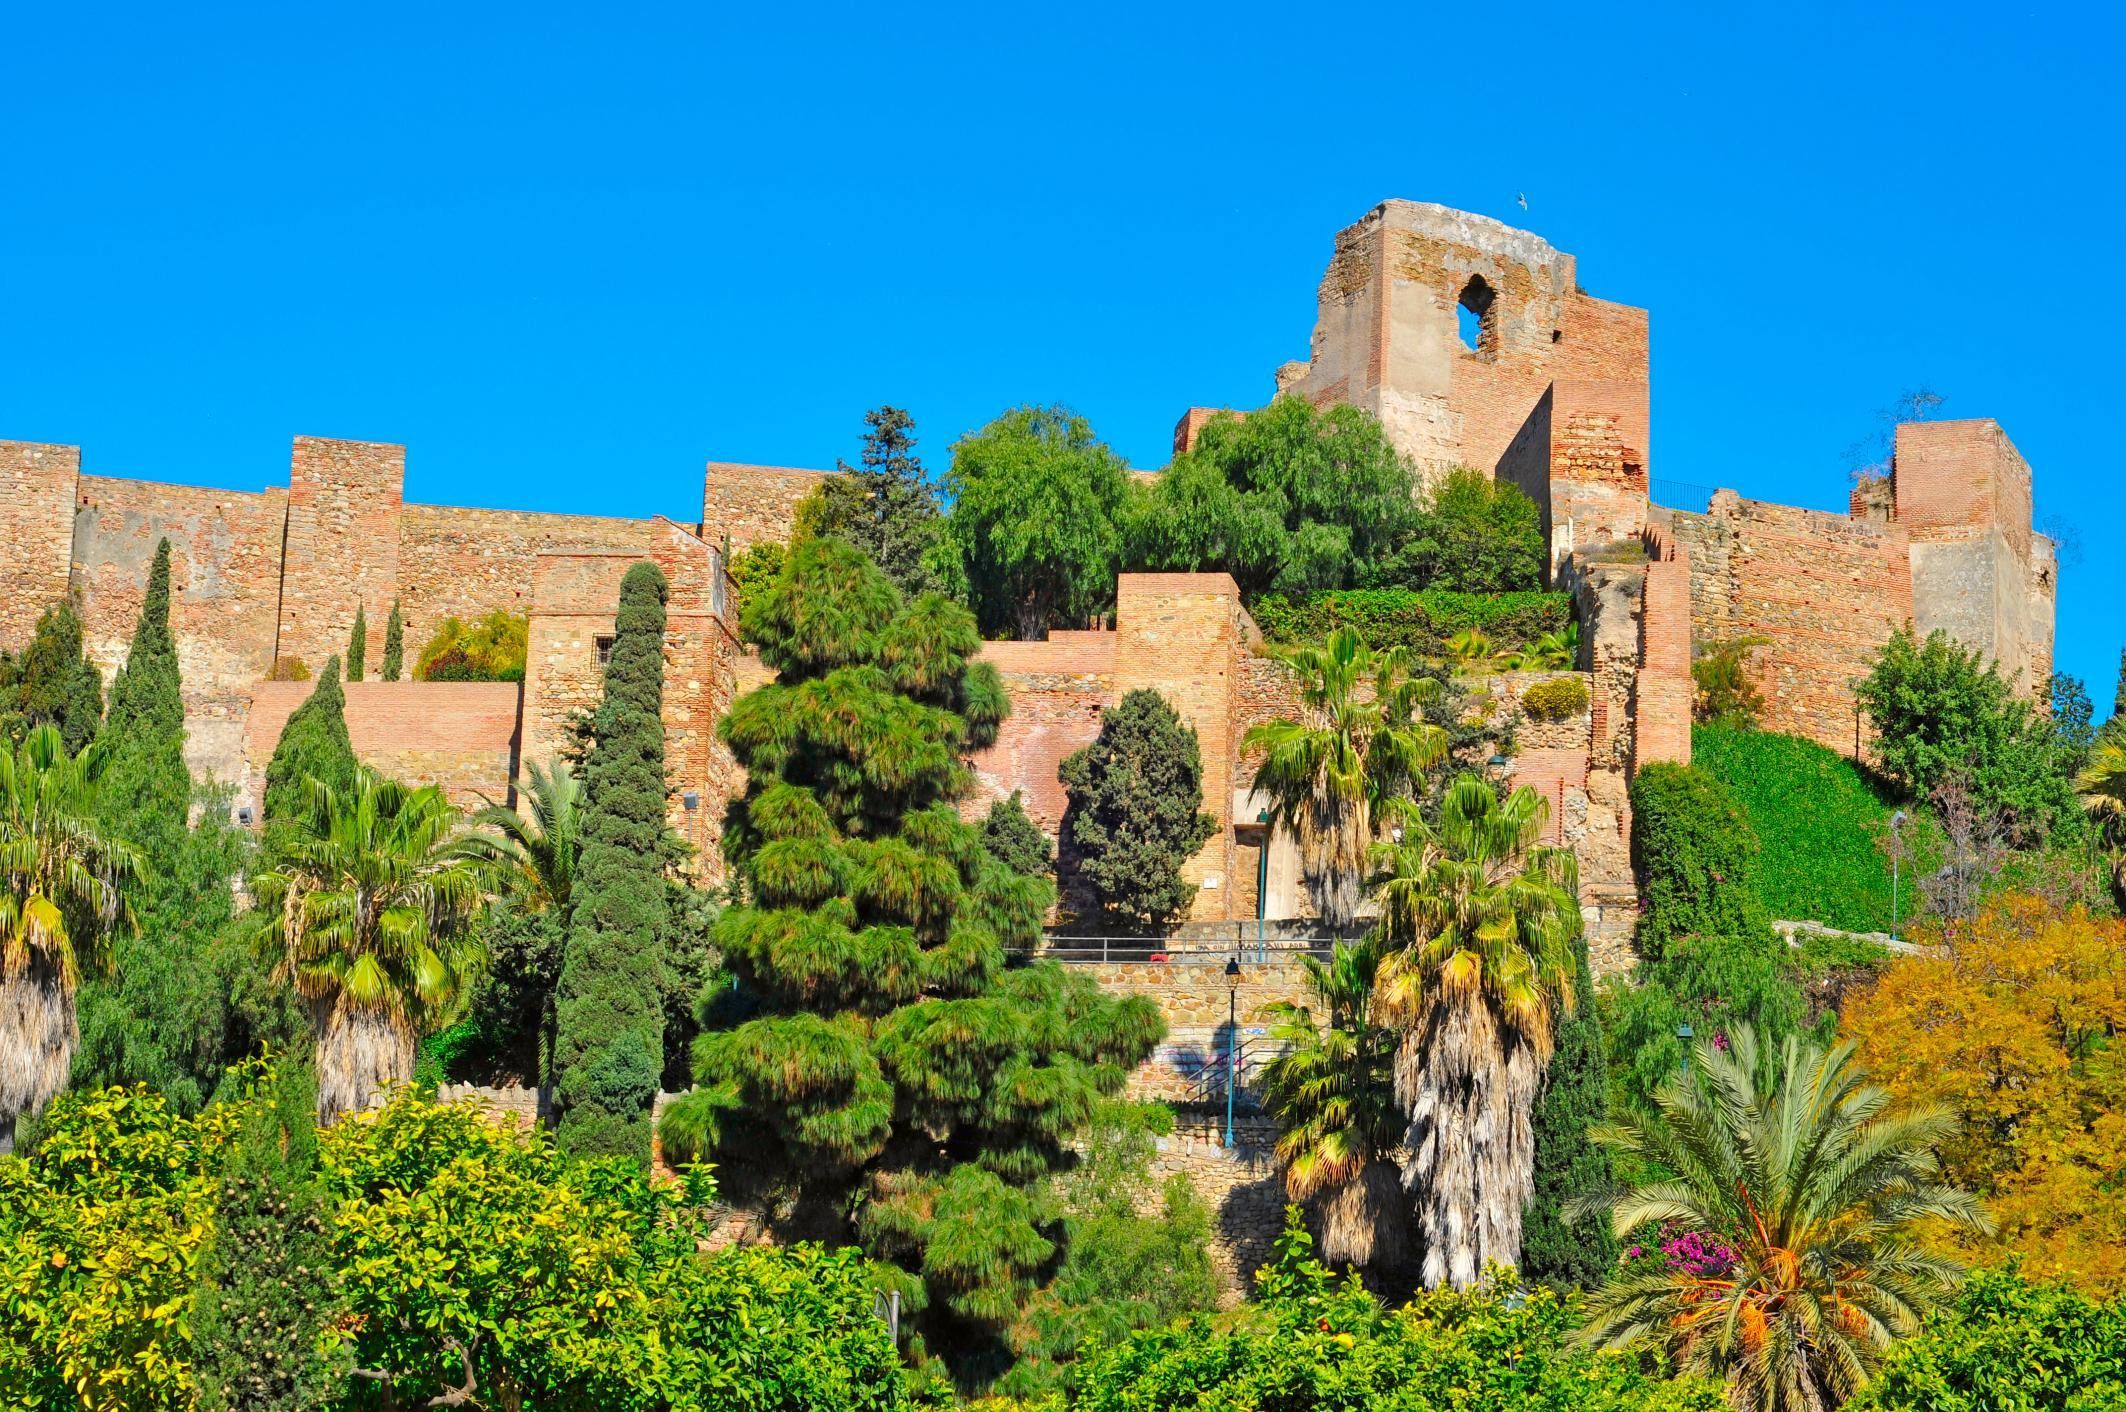 How to Spend 2 Days in Malaga